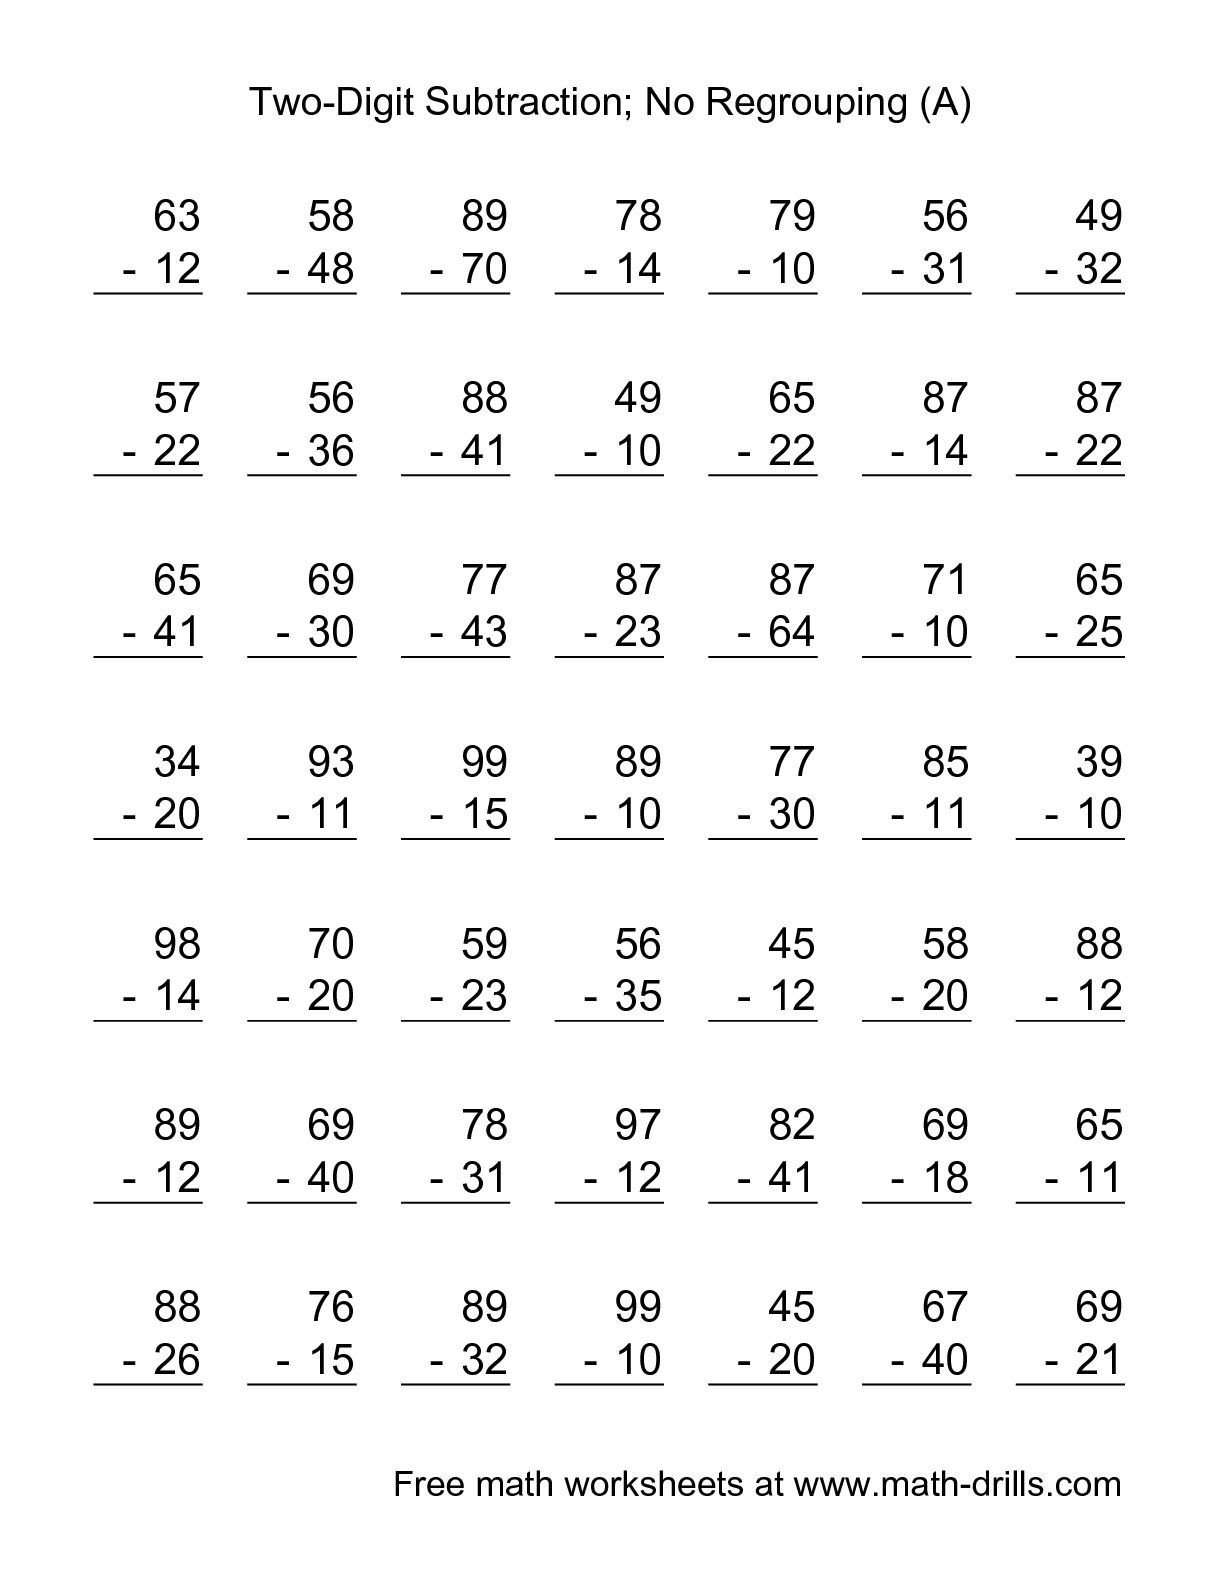 The Two-Digit Subtraction With No Regrouping -- 49 Questions (A - Free Printable Double Digit Addition And Subtraction Worksheets